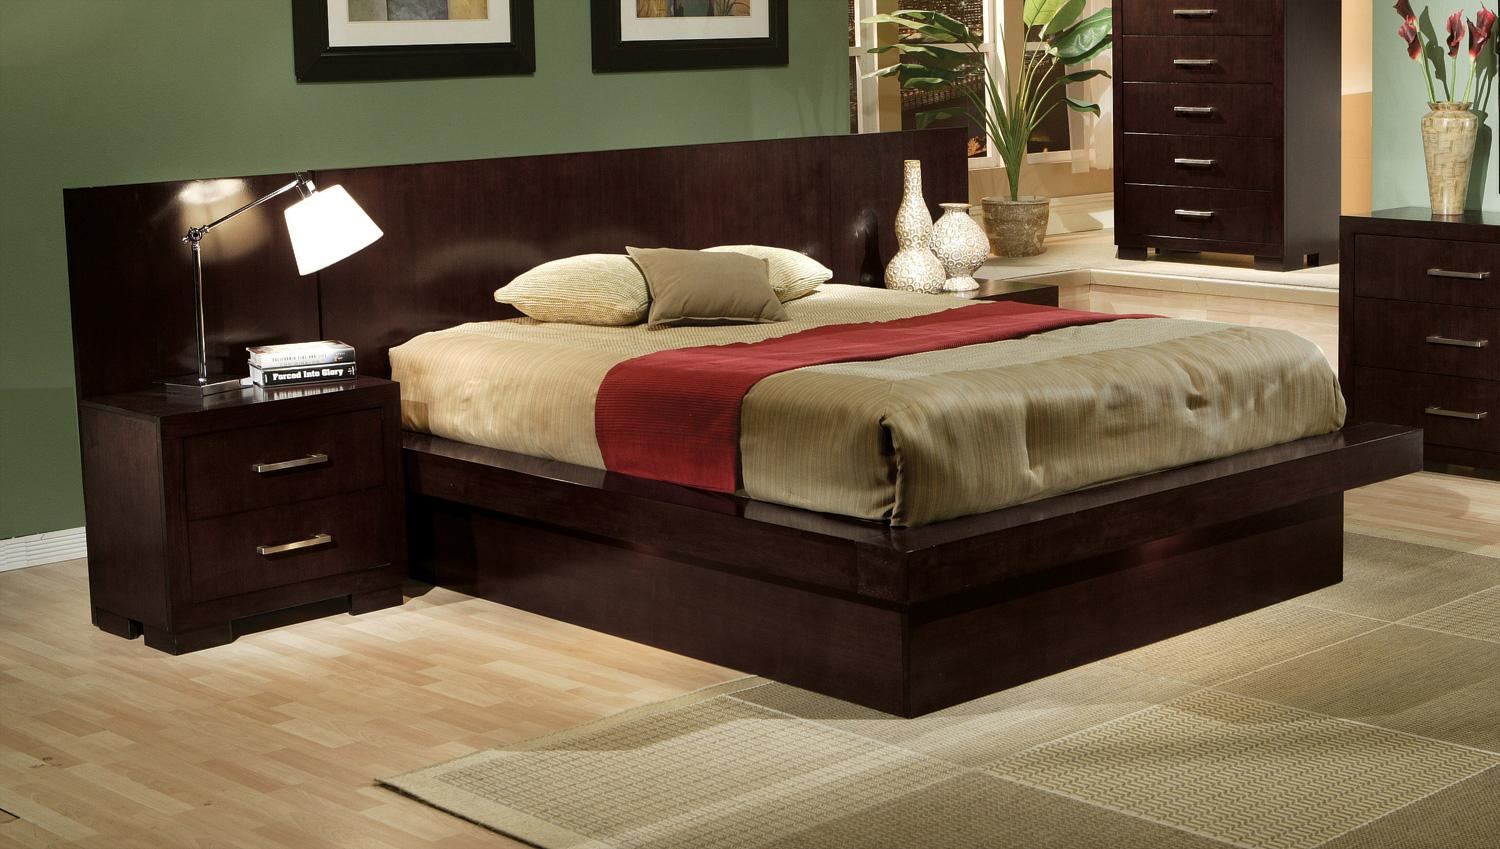 Modern 4 pc platform bed queen bedroom fairfax va for Bed set queen furniture